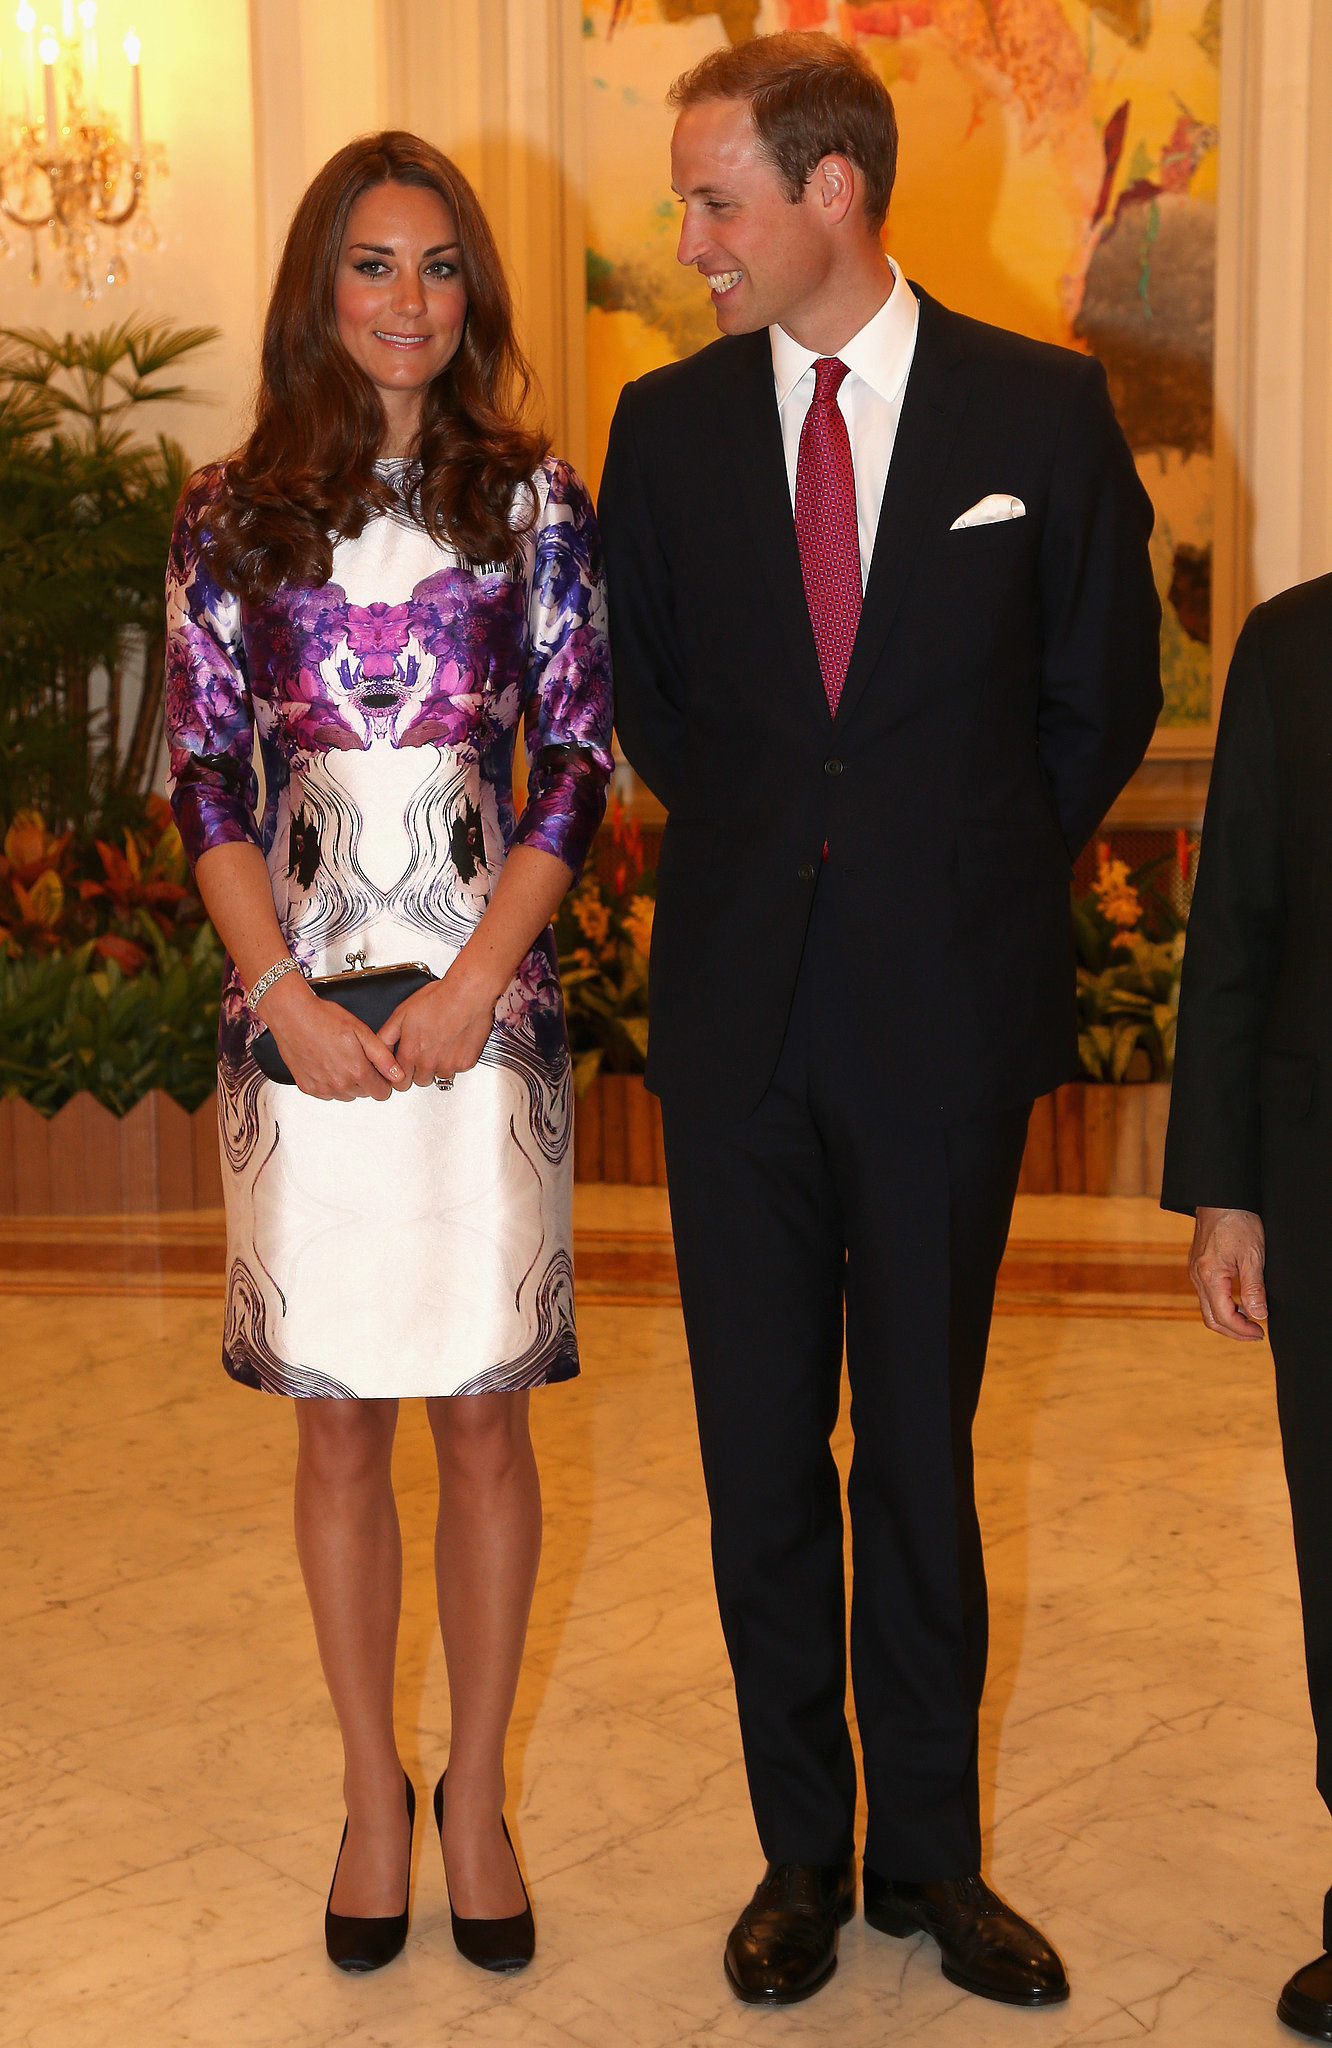 Prince William gave Kate Middleton a smile in September 2012 while they visited Singapore.